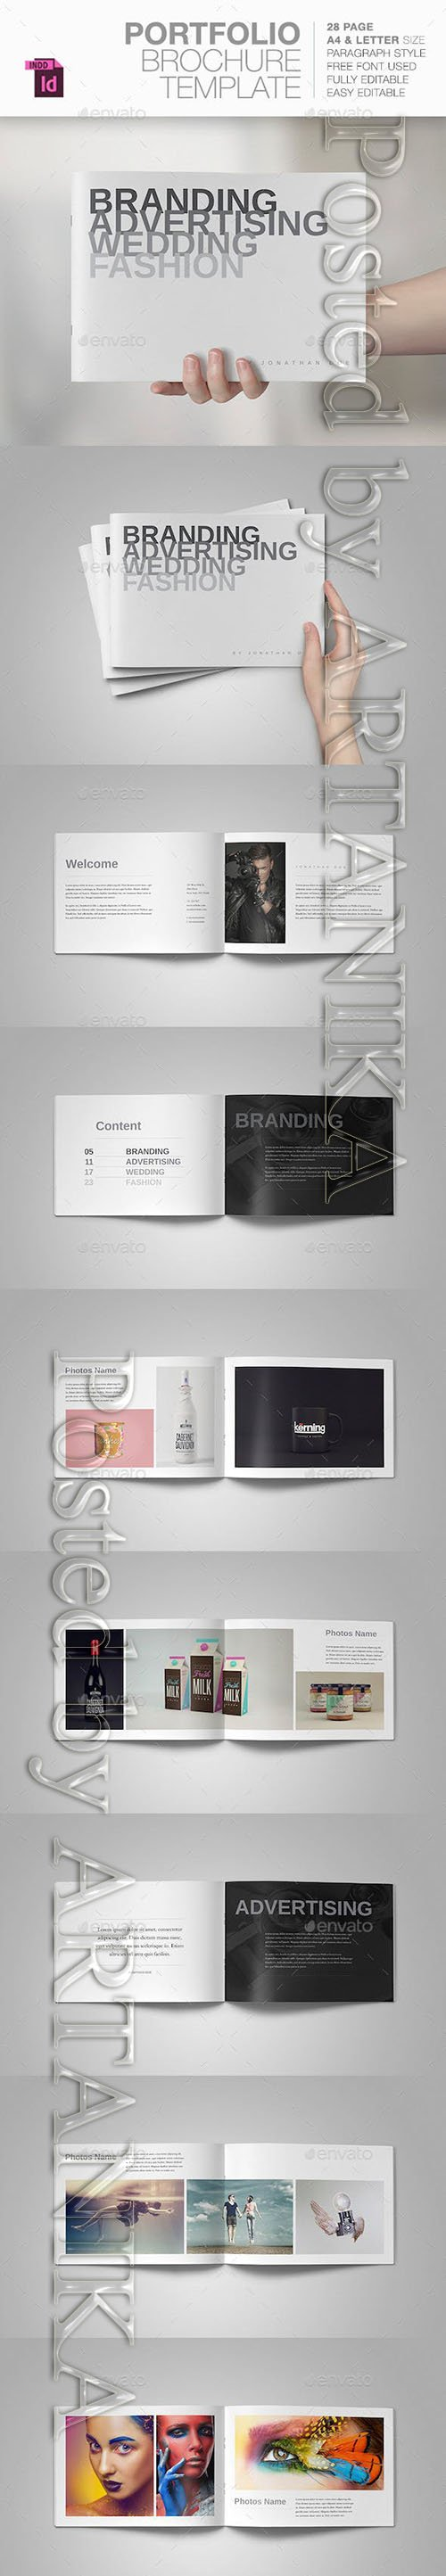 Graphicriver - Portfolio Brochure Template 10593768